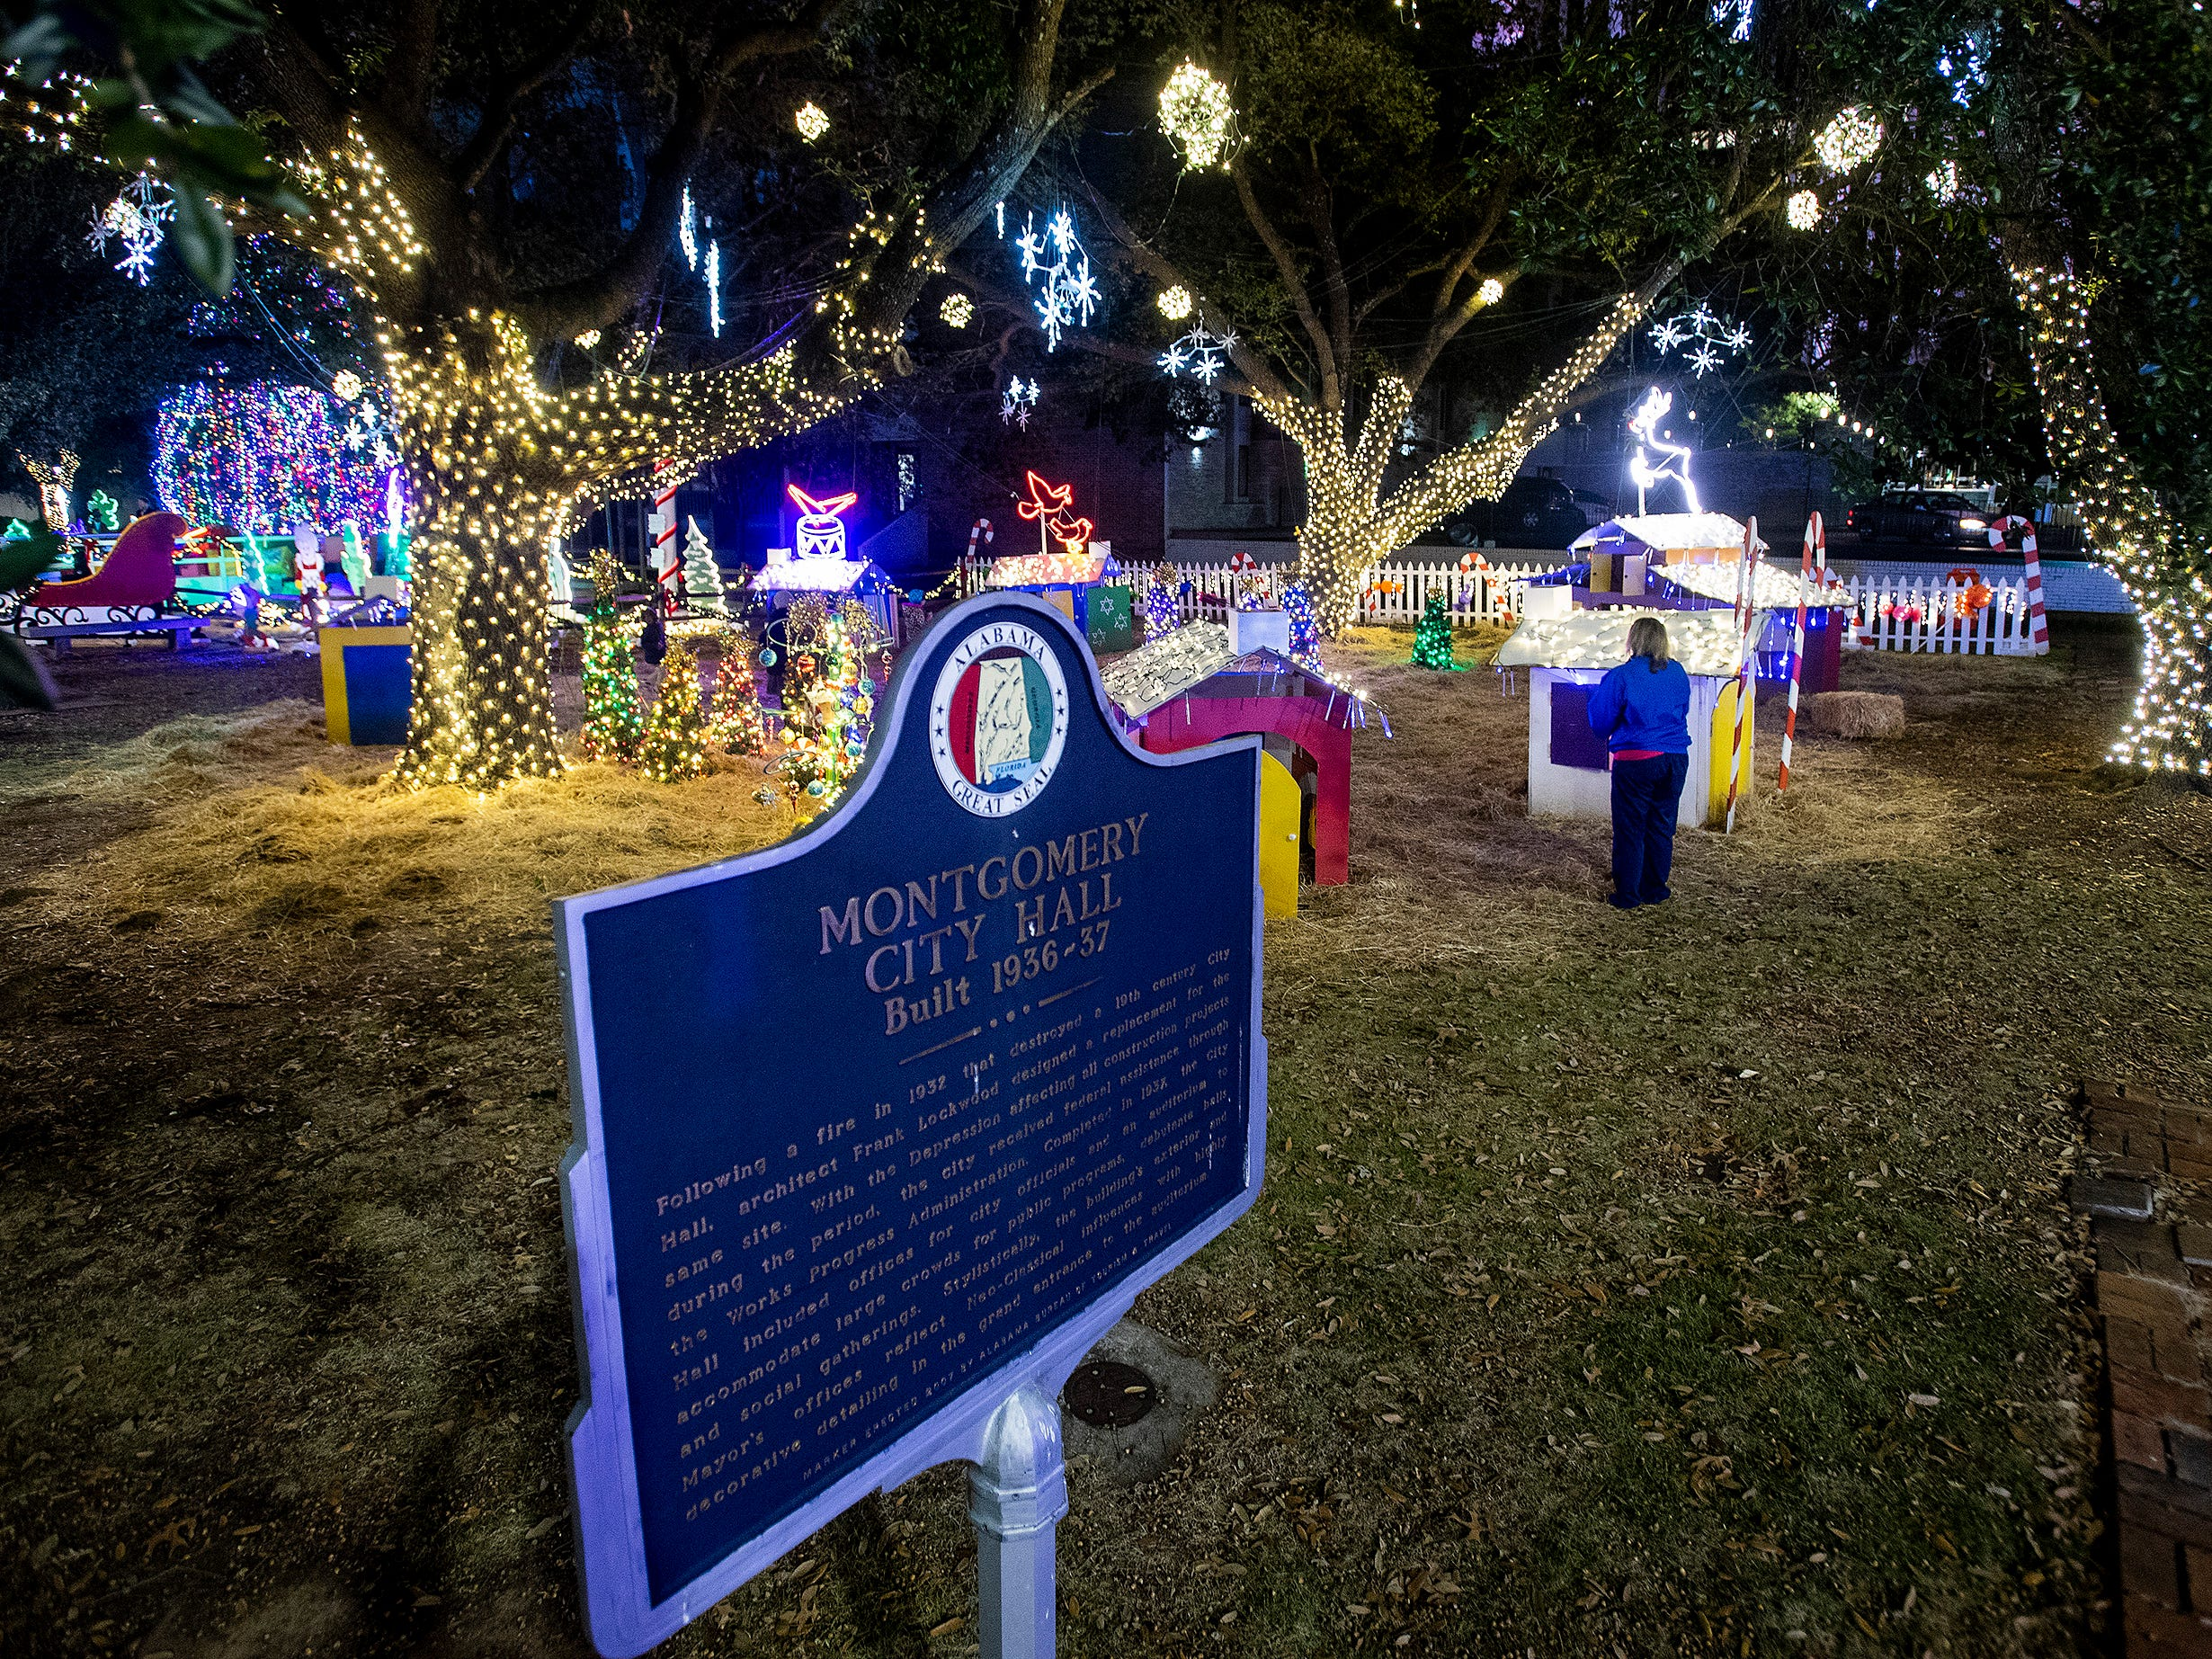 During the City of Montgomery Christmas Tree lighting in Montgomery, Ala., on Tuesday evening November 27, 2018.